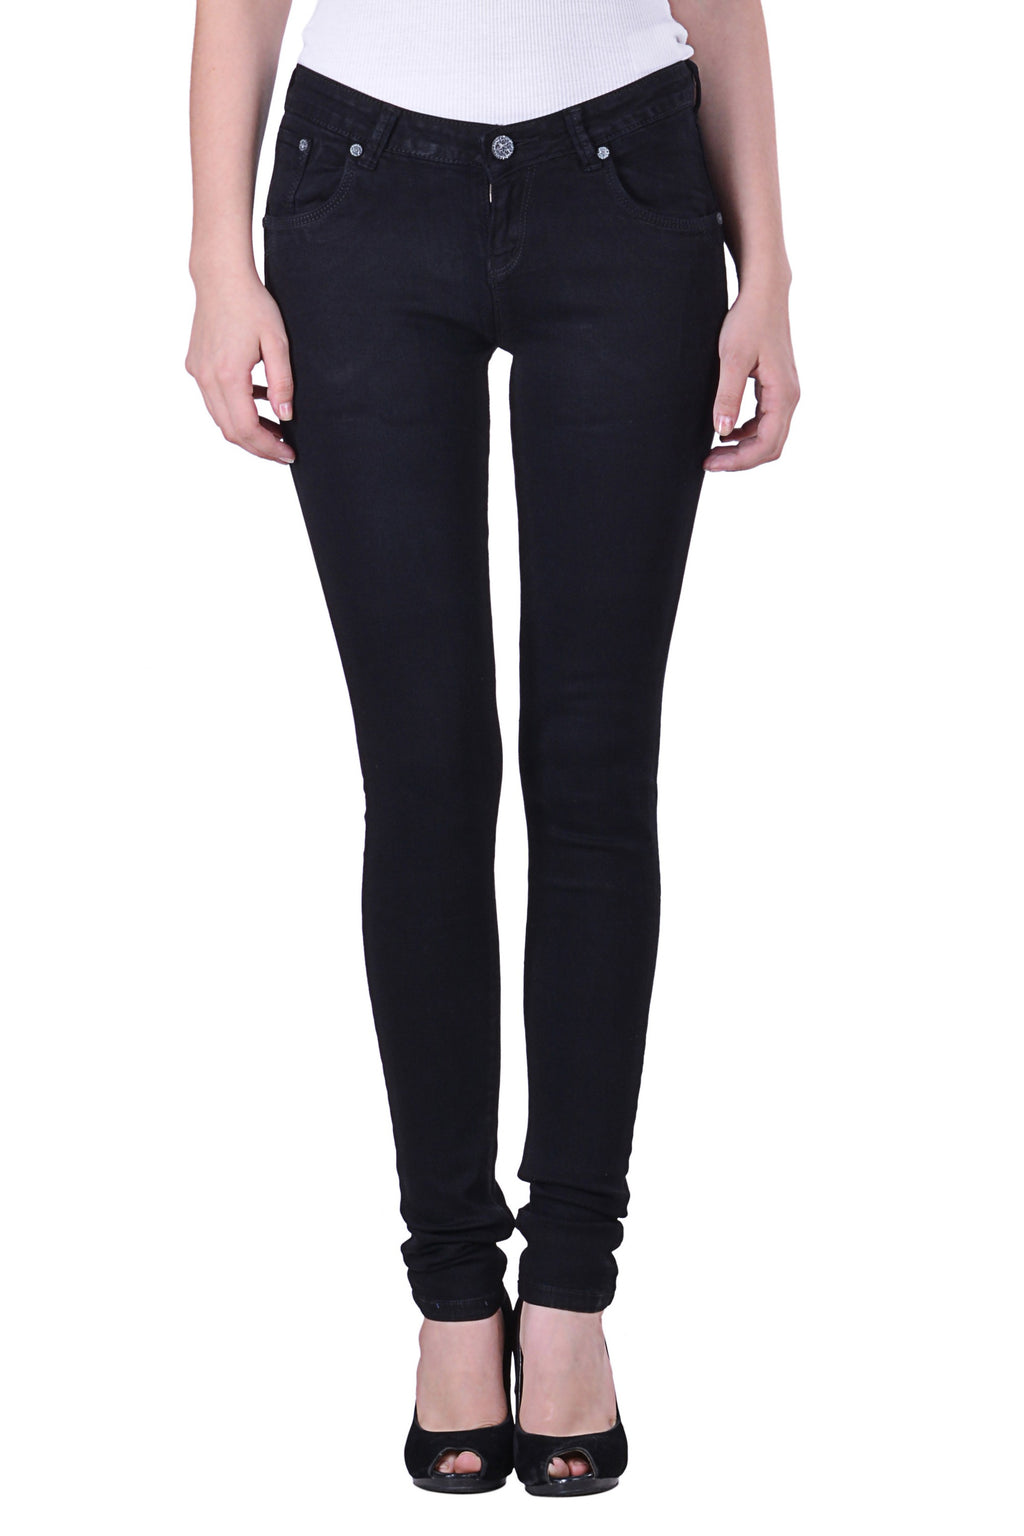 Hoffmen women Basic BLACK Denim MSGS8003